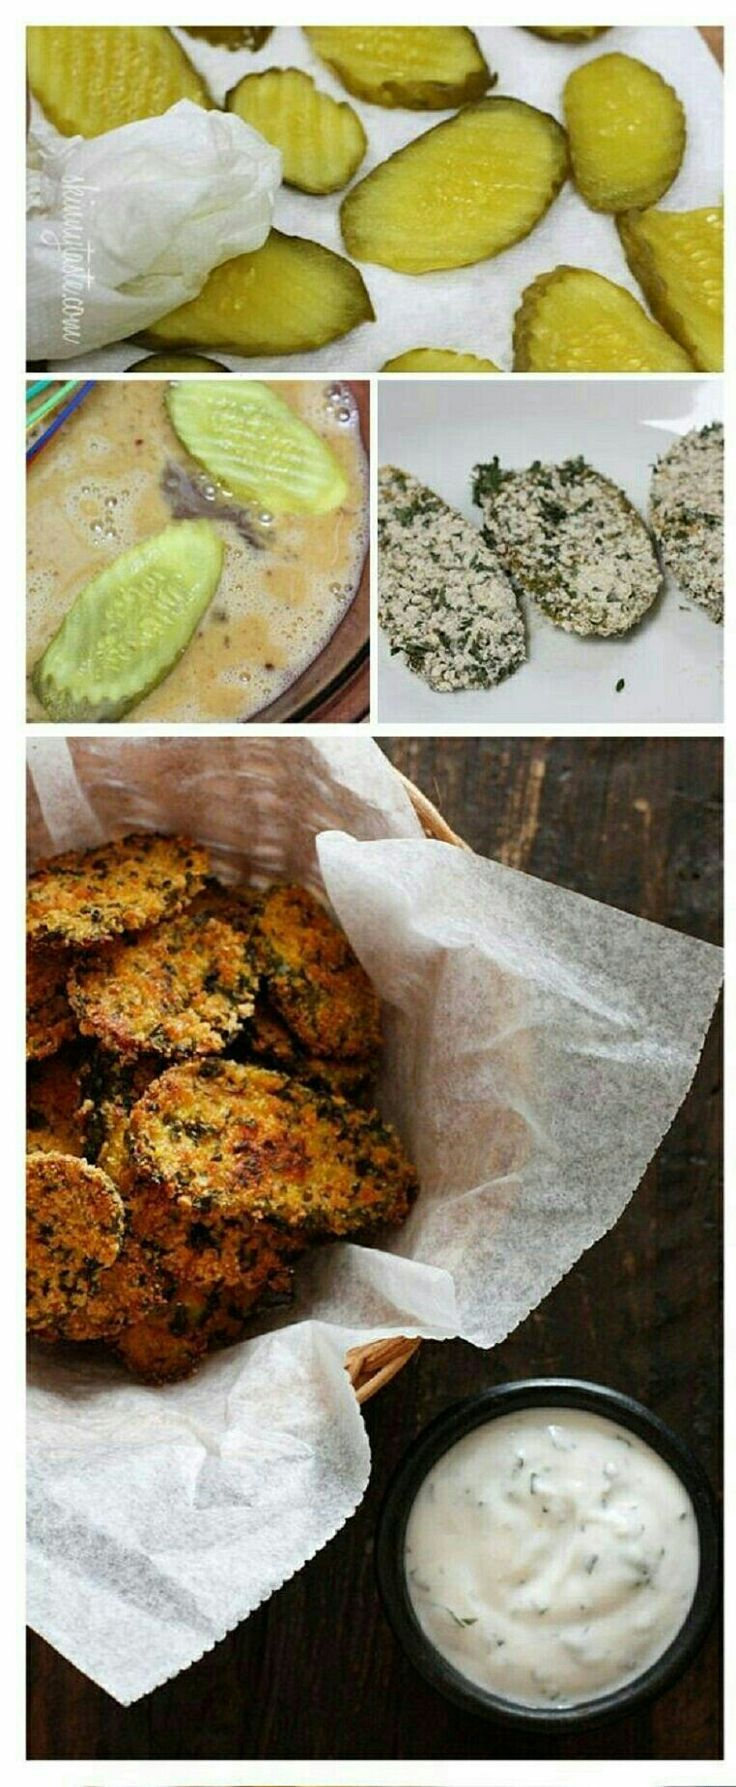 A delicious idea to celebrate the #SuperBowl. #SuperBowlSnacks #Recipes #Snacks #SuperBowlTreats